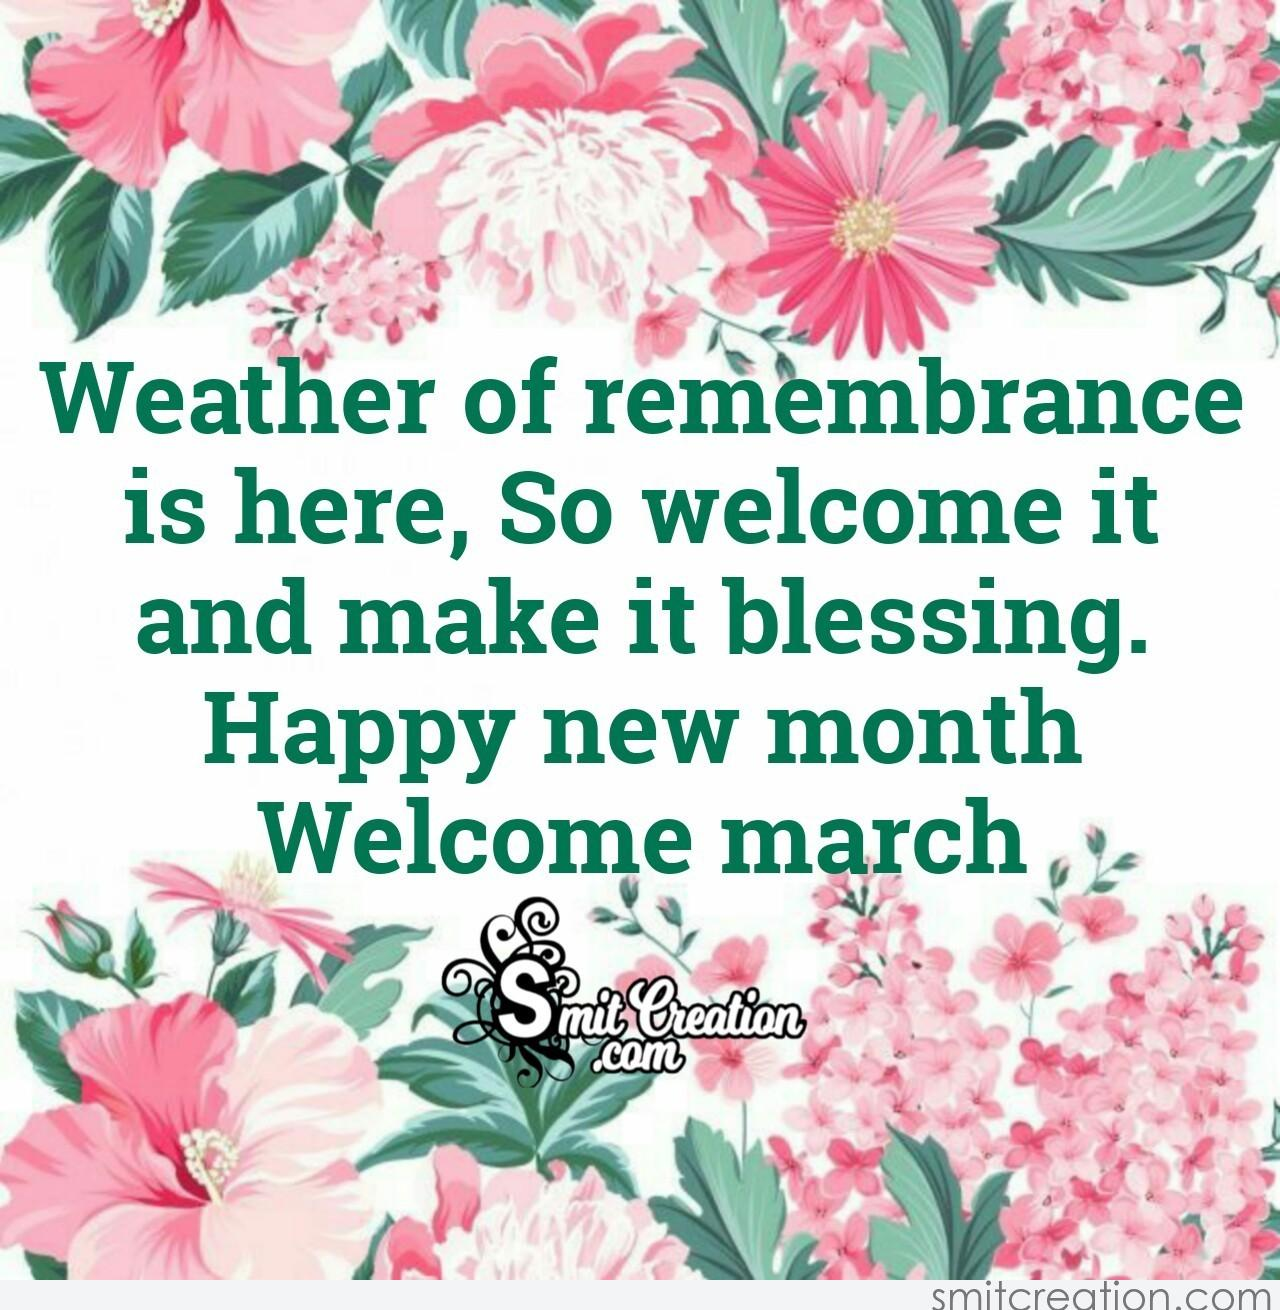 Happy New Month Welcome March Smitcreation Com